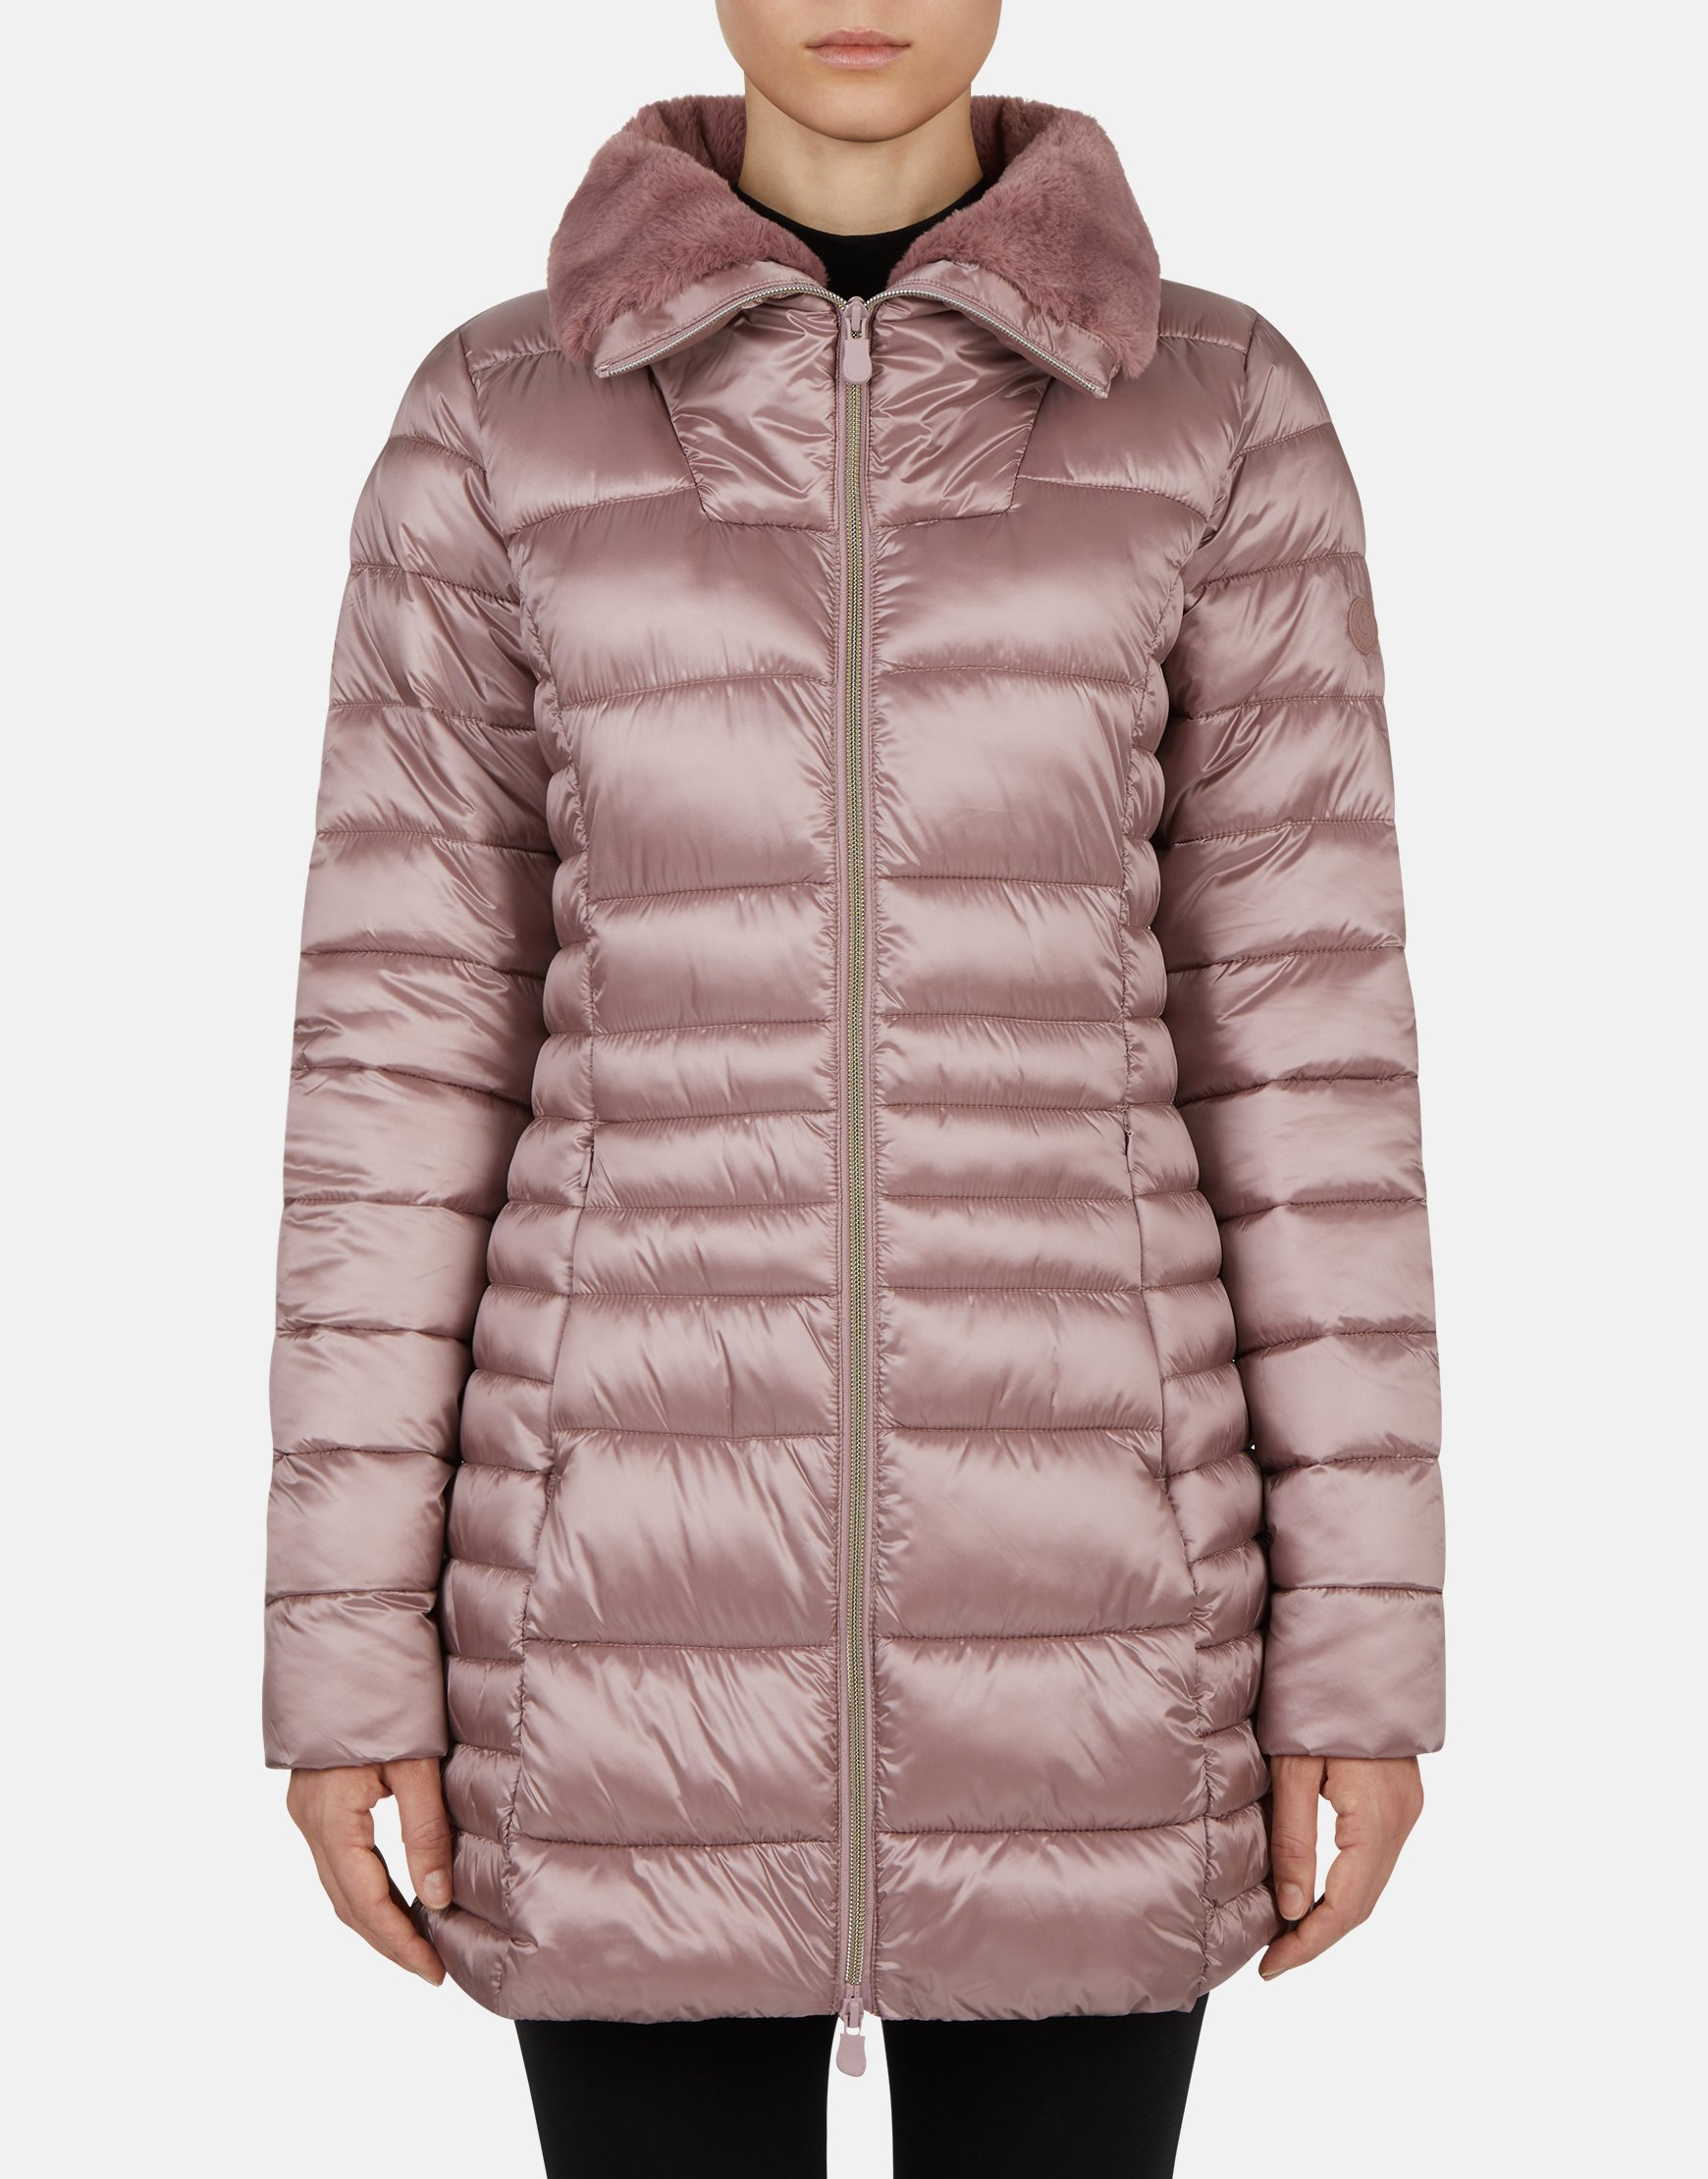 SAVE THE DUCK WOMEN'S IRIS WINTER STAND UP COLLAR COAT WITH FAUX FUR LINING, $248.00 @savetheduckusa.com